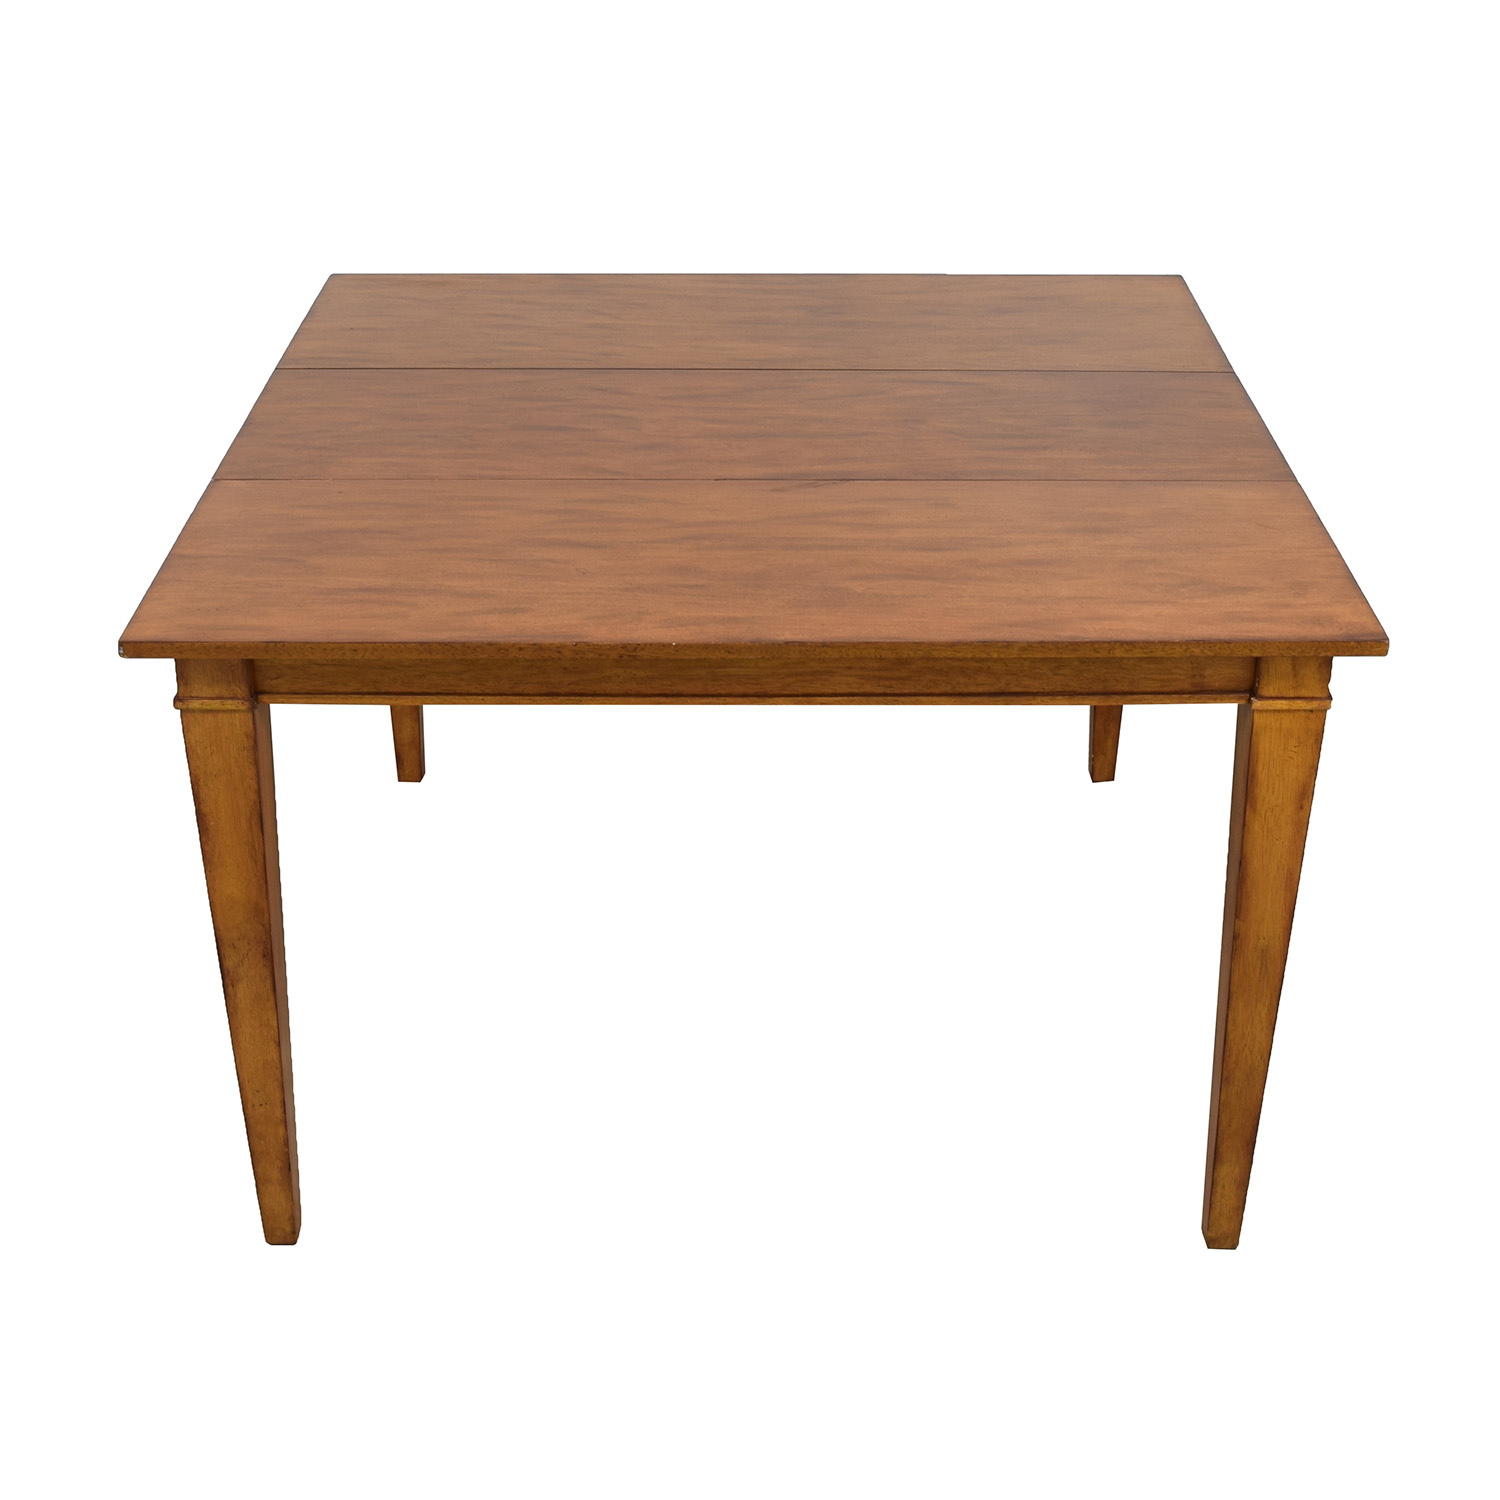 Ethan Allen Ethan Allen Wood Extendable Dining Table for sale